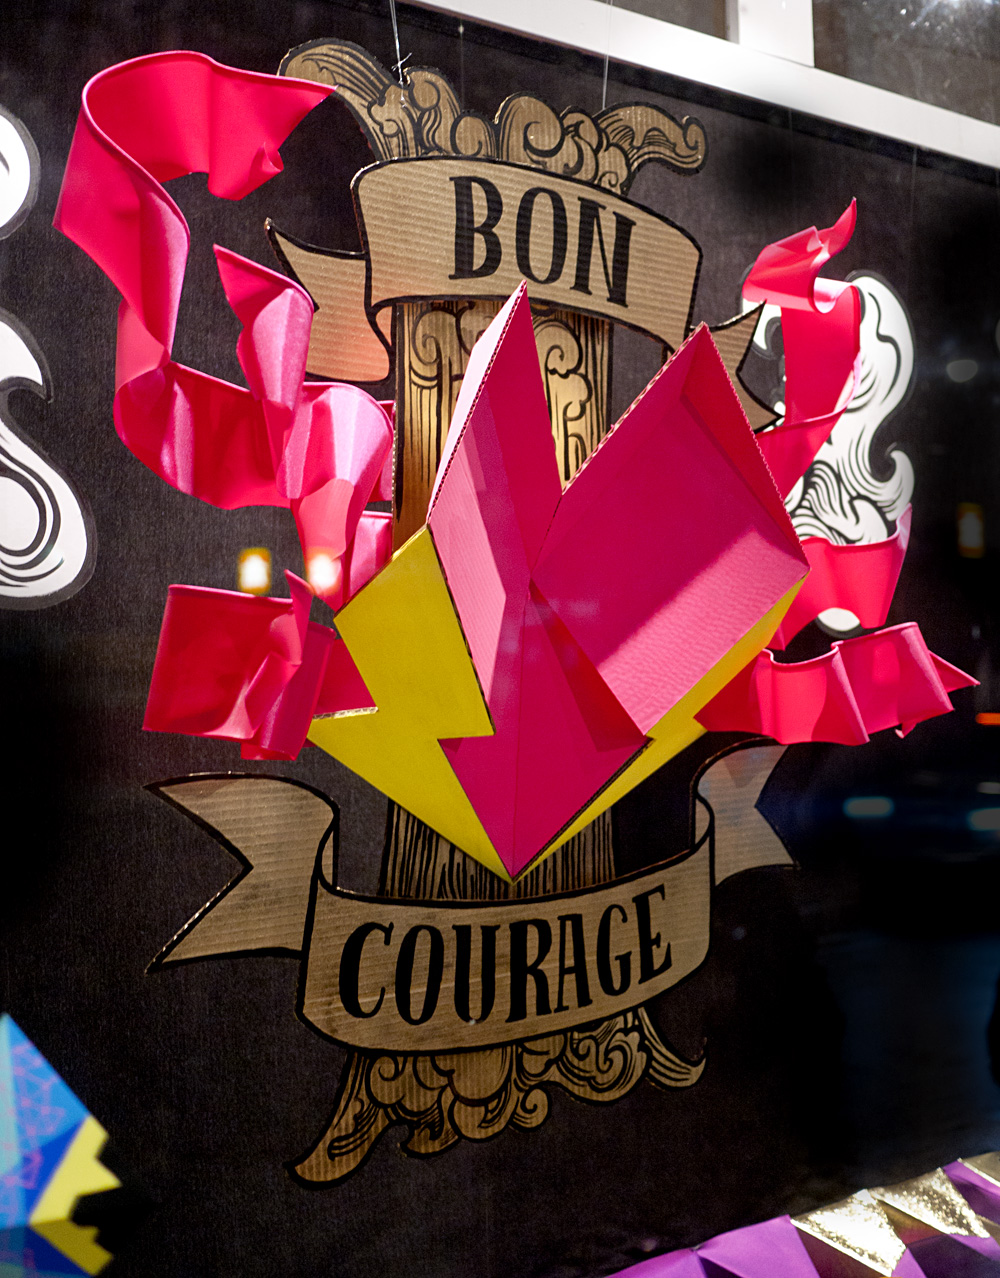 Bon Courage from the side.